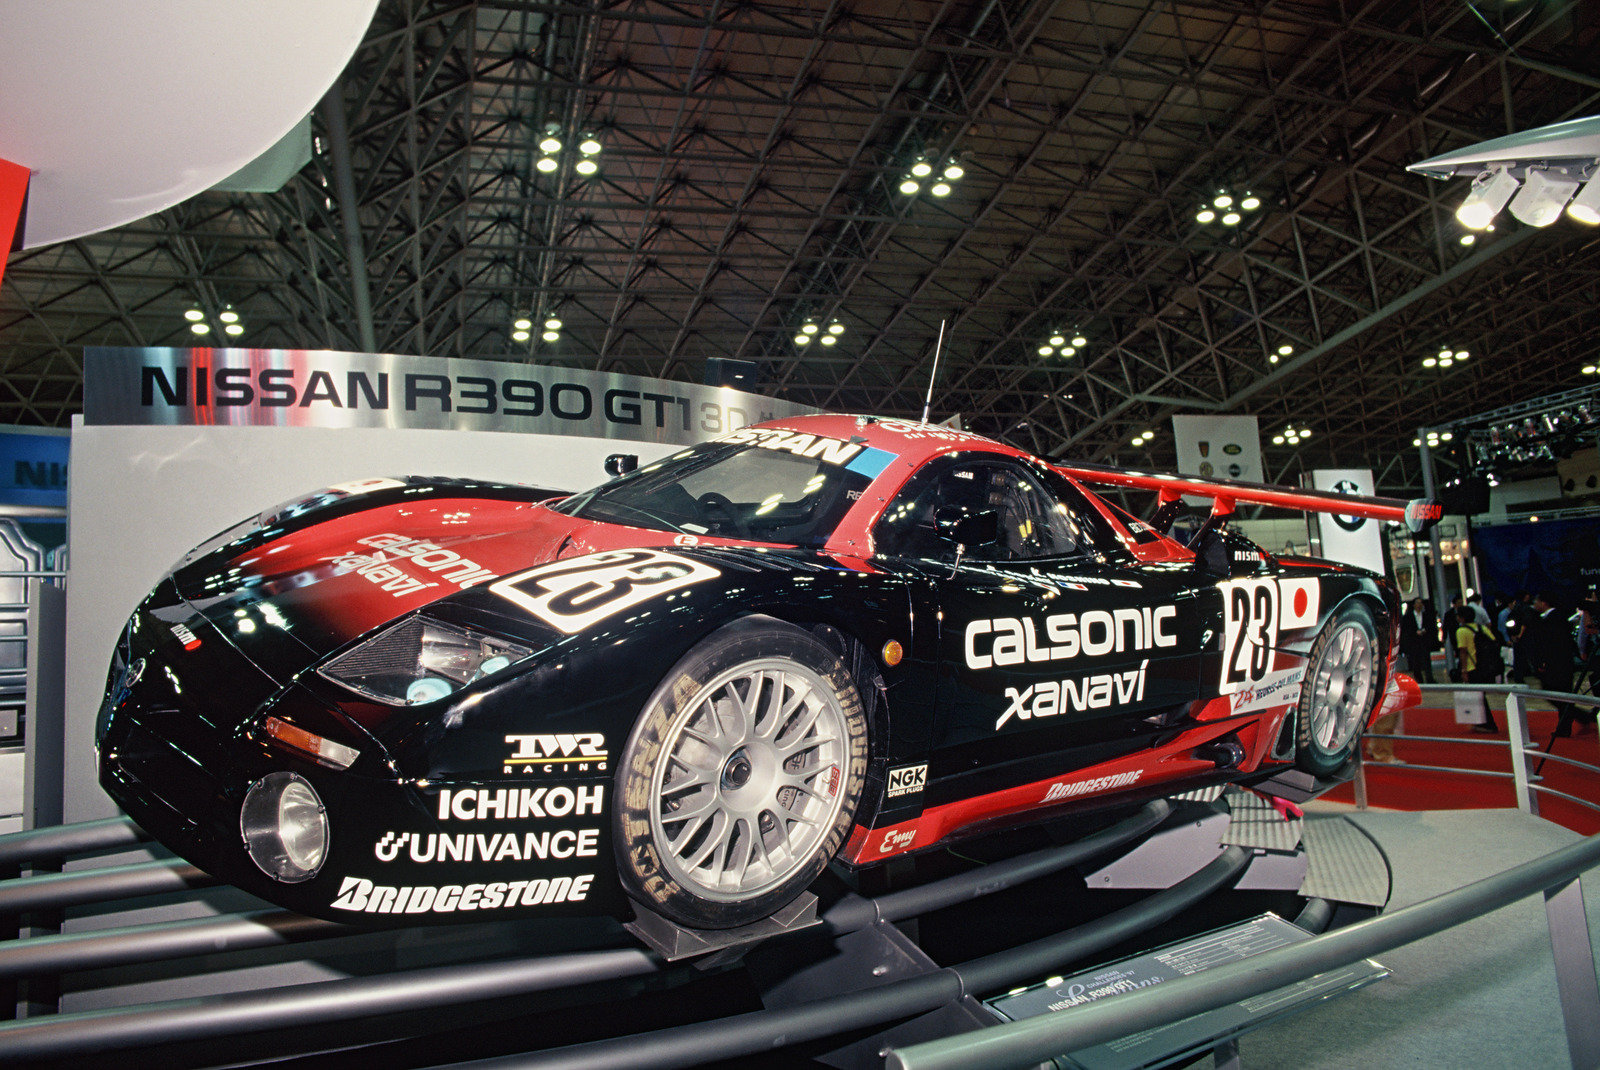 nissan attacking le mans with gt r lm nismo lmp1 car picture 553337 car news top speed. Black Bedroom Furniture Sets. Home Design Ideas